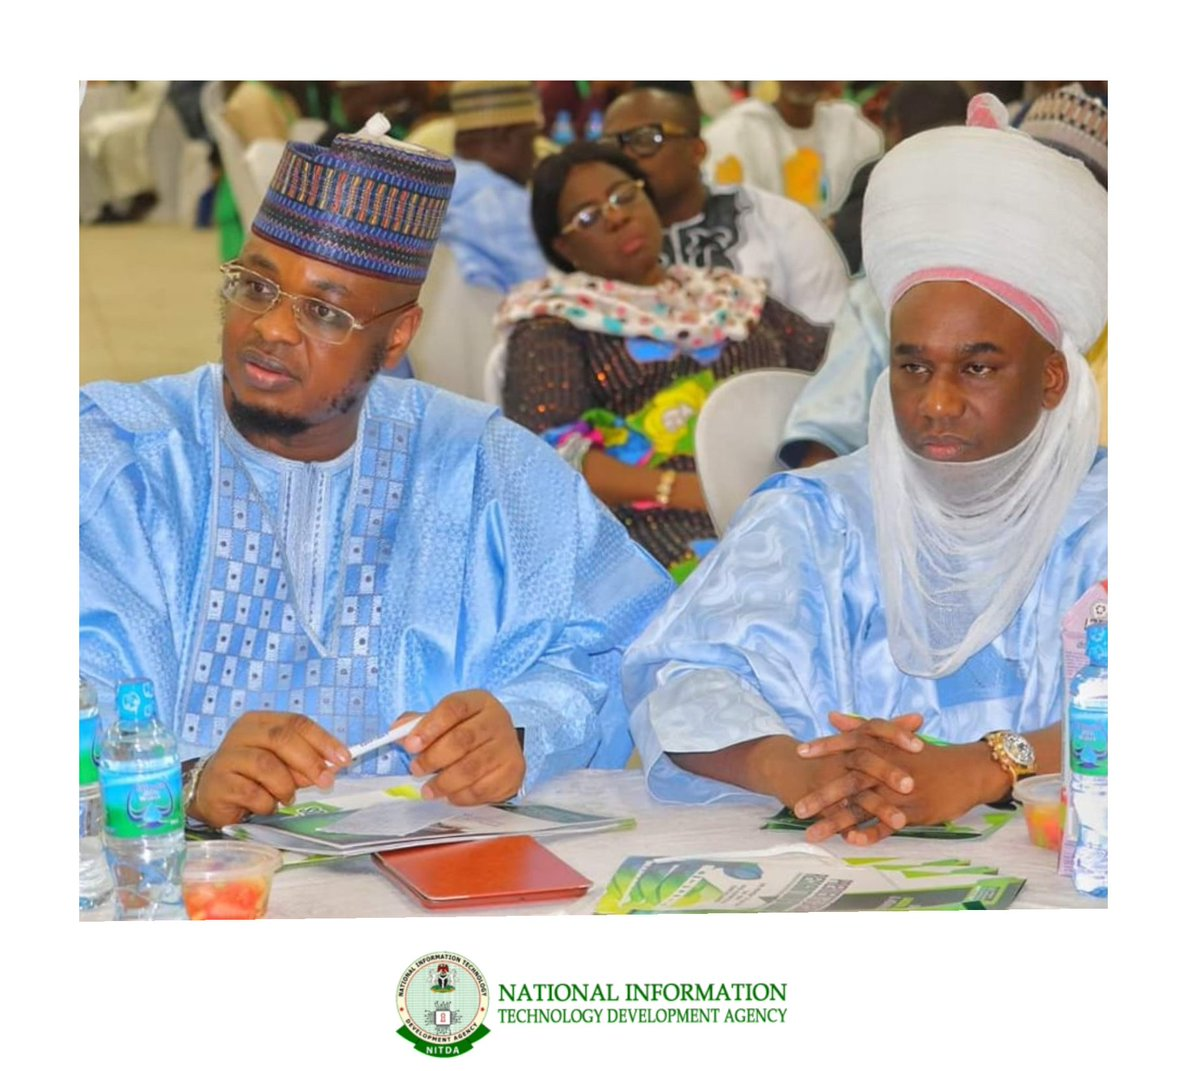 The Chief Information Technology Officer of Nigeria, @DrIsaPantami, with the Emir of Gombe, HRH Alh Abubakar Shehu-Abubakar during the @NigeriaComputer Presidents Special Recognition and Awards part of activities of #NCSGombe2019 taking place at Gombe State University, Gombe.